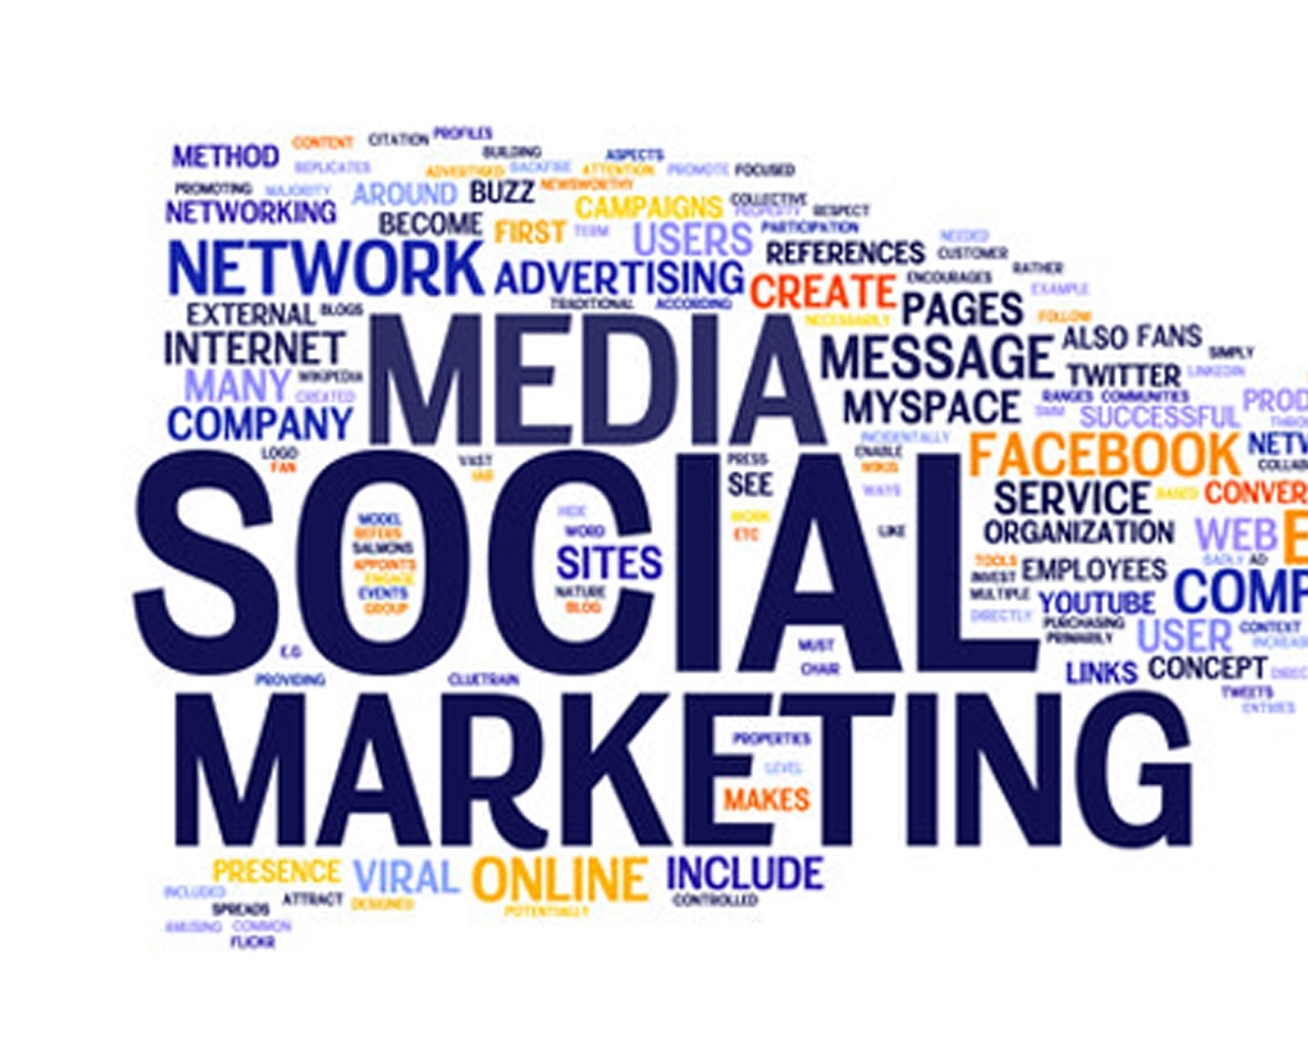 SEO Tips For Social Media Marketing